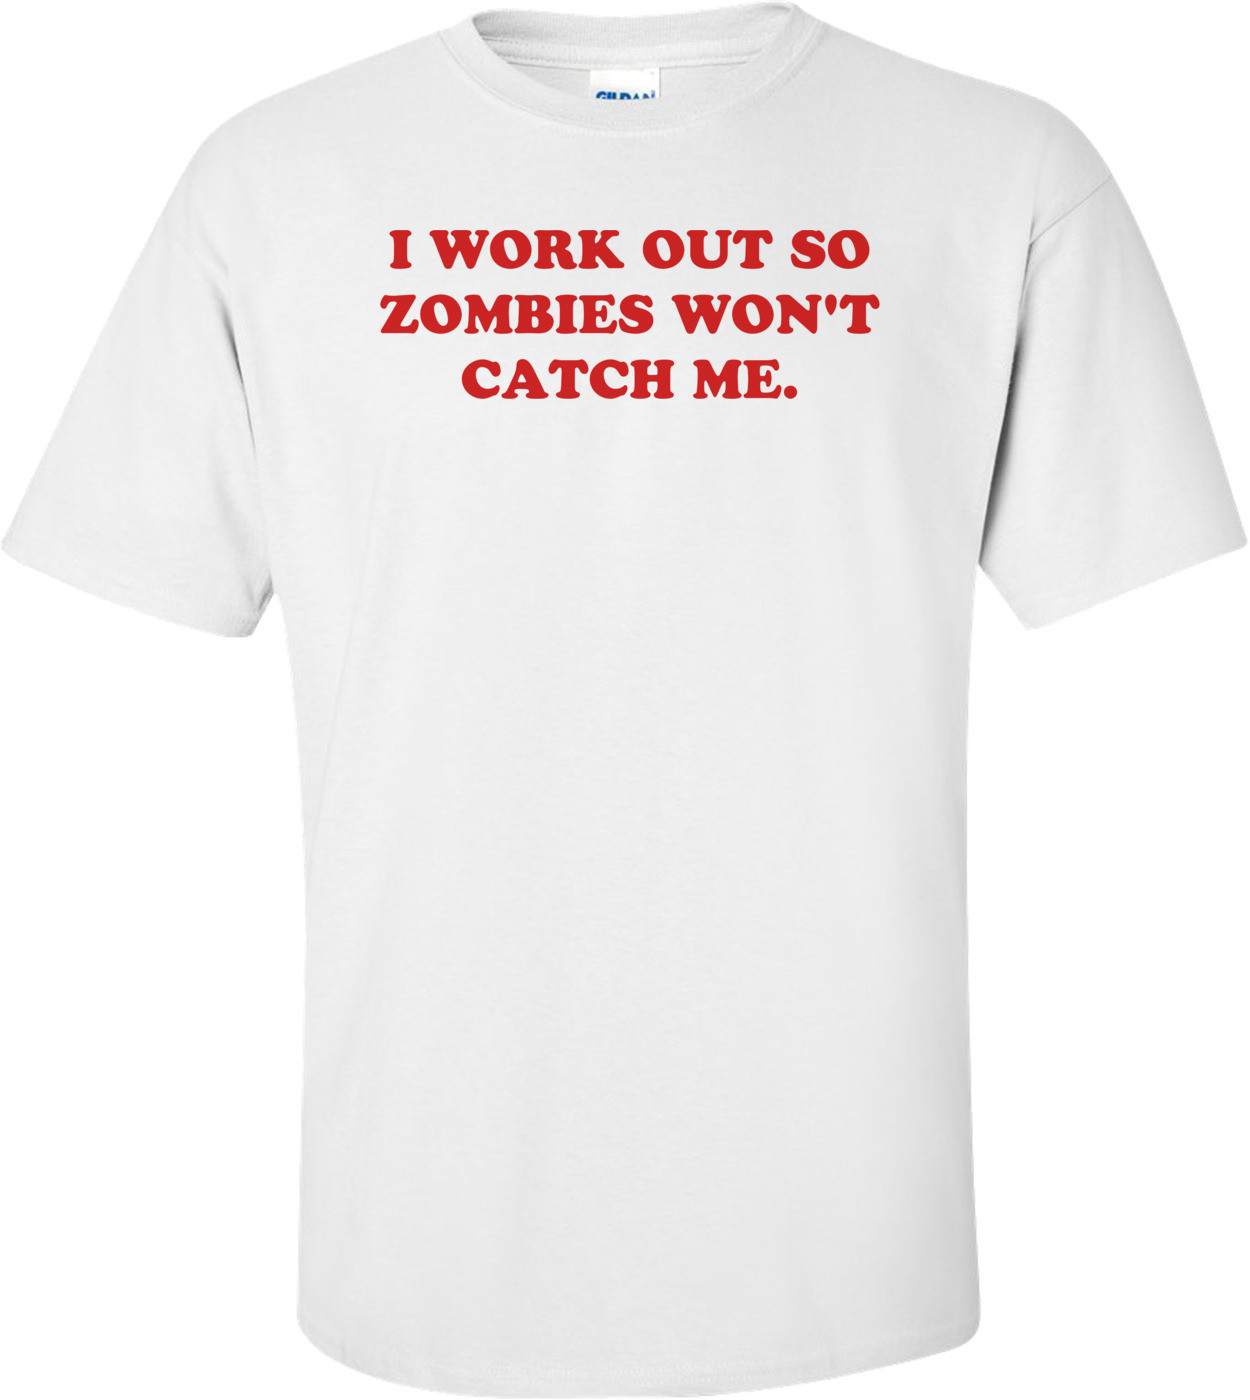 I WORK OUT SO ZOMBIES WON'T CATCH ME. Shirt